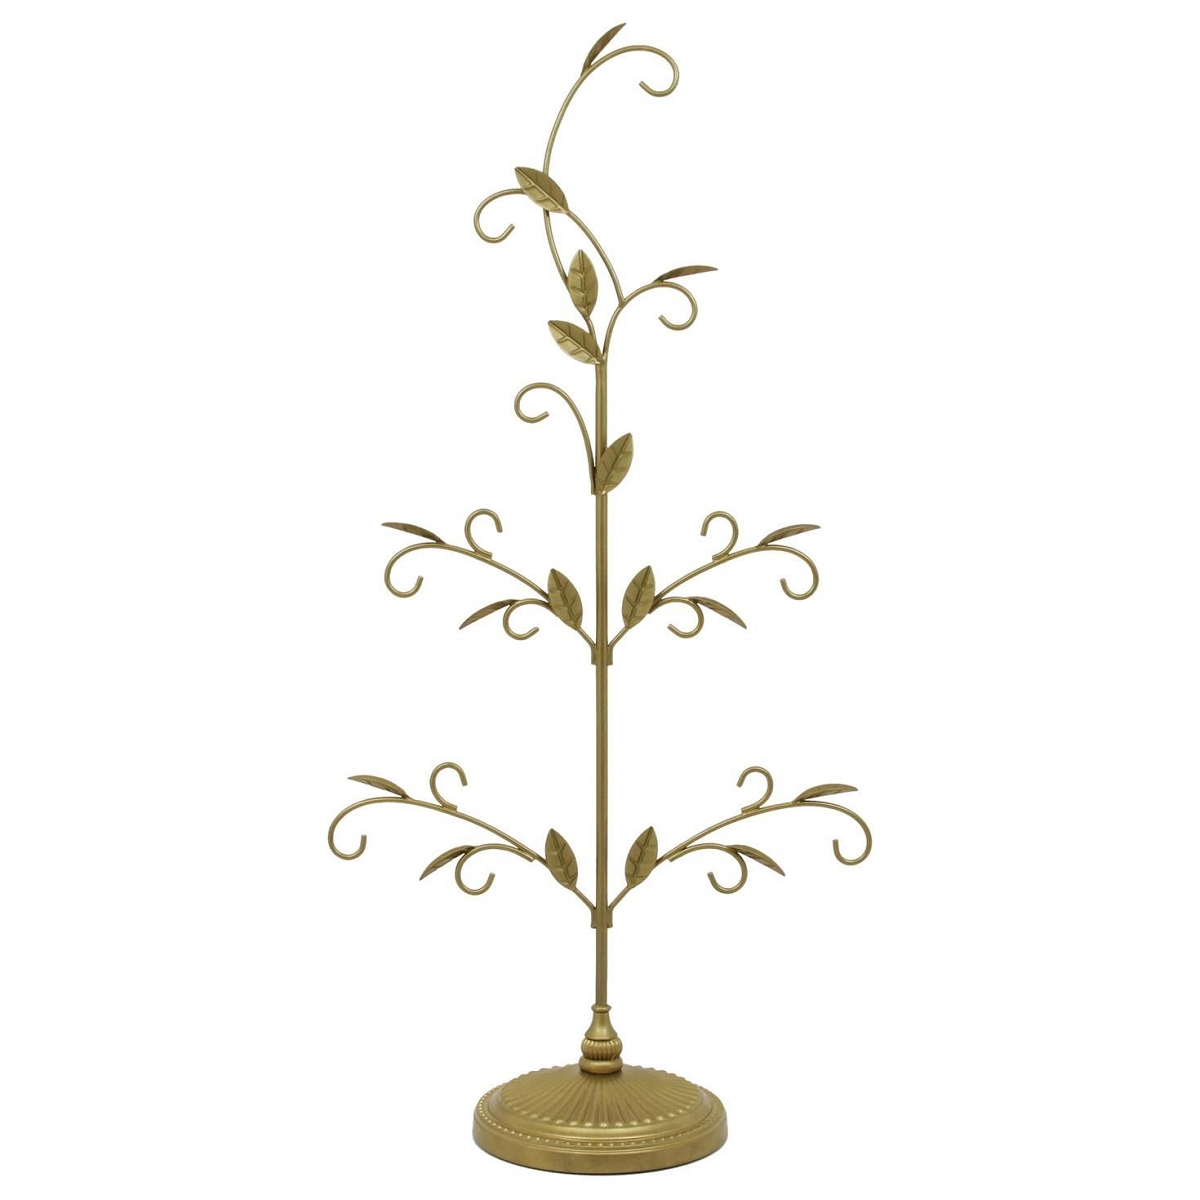 2016 gold miniature ornament tree